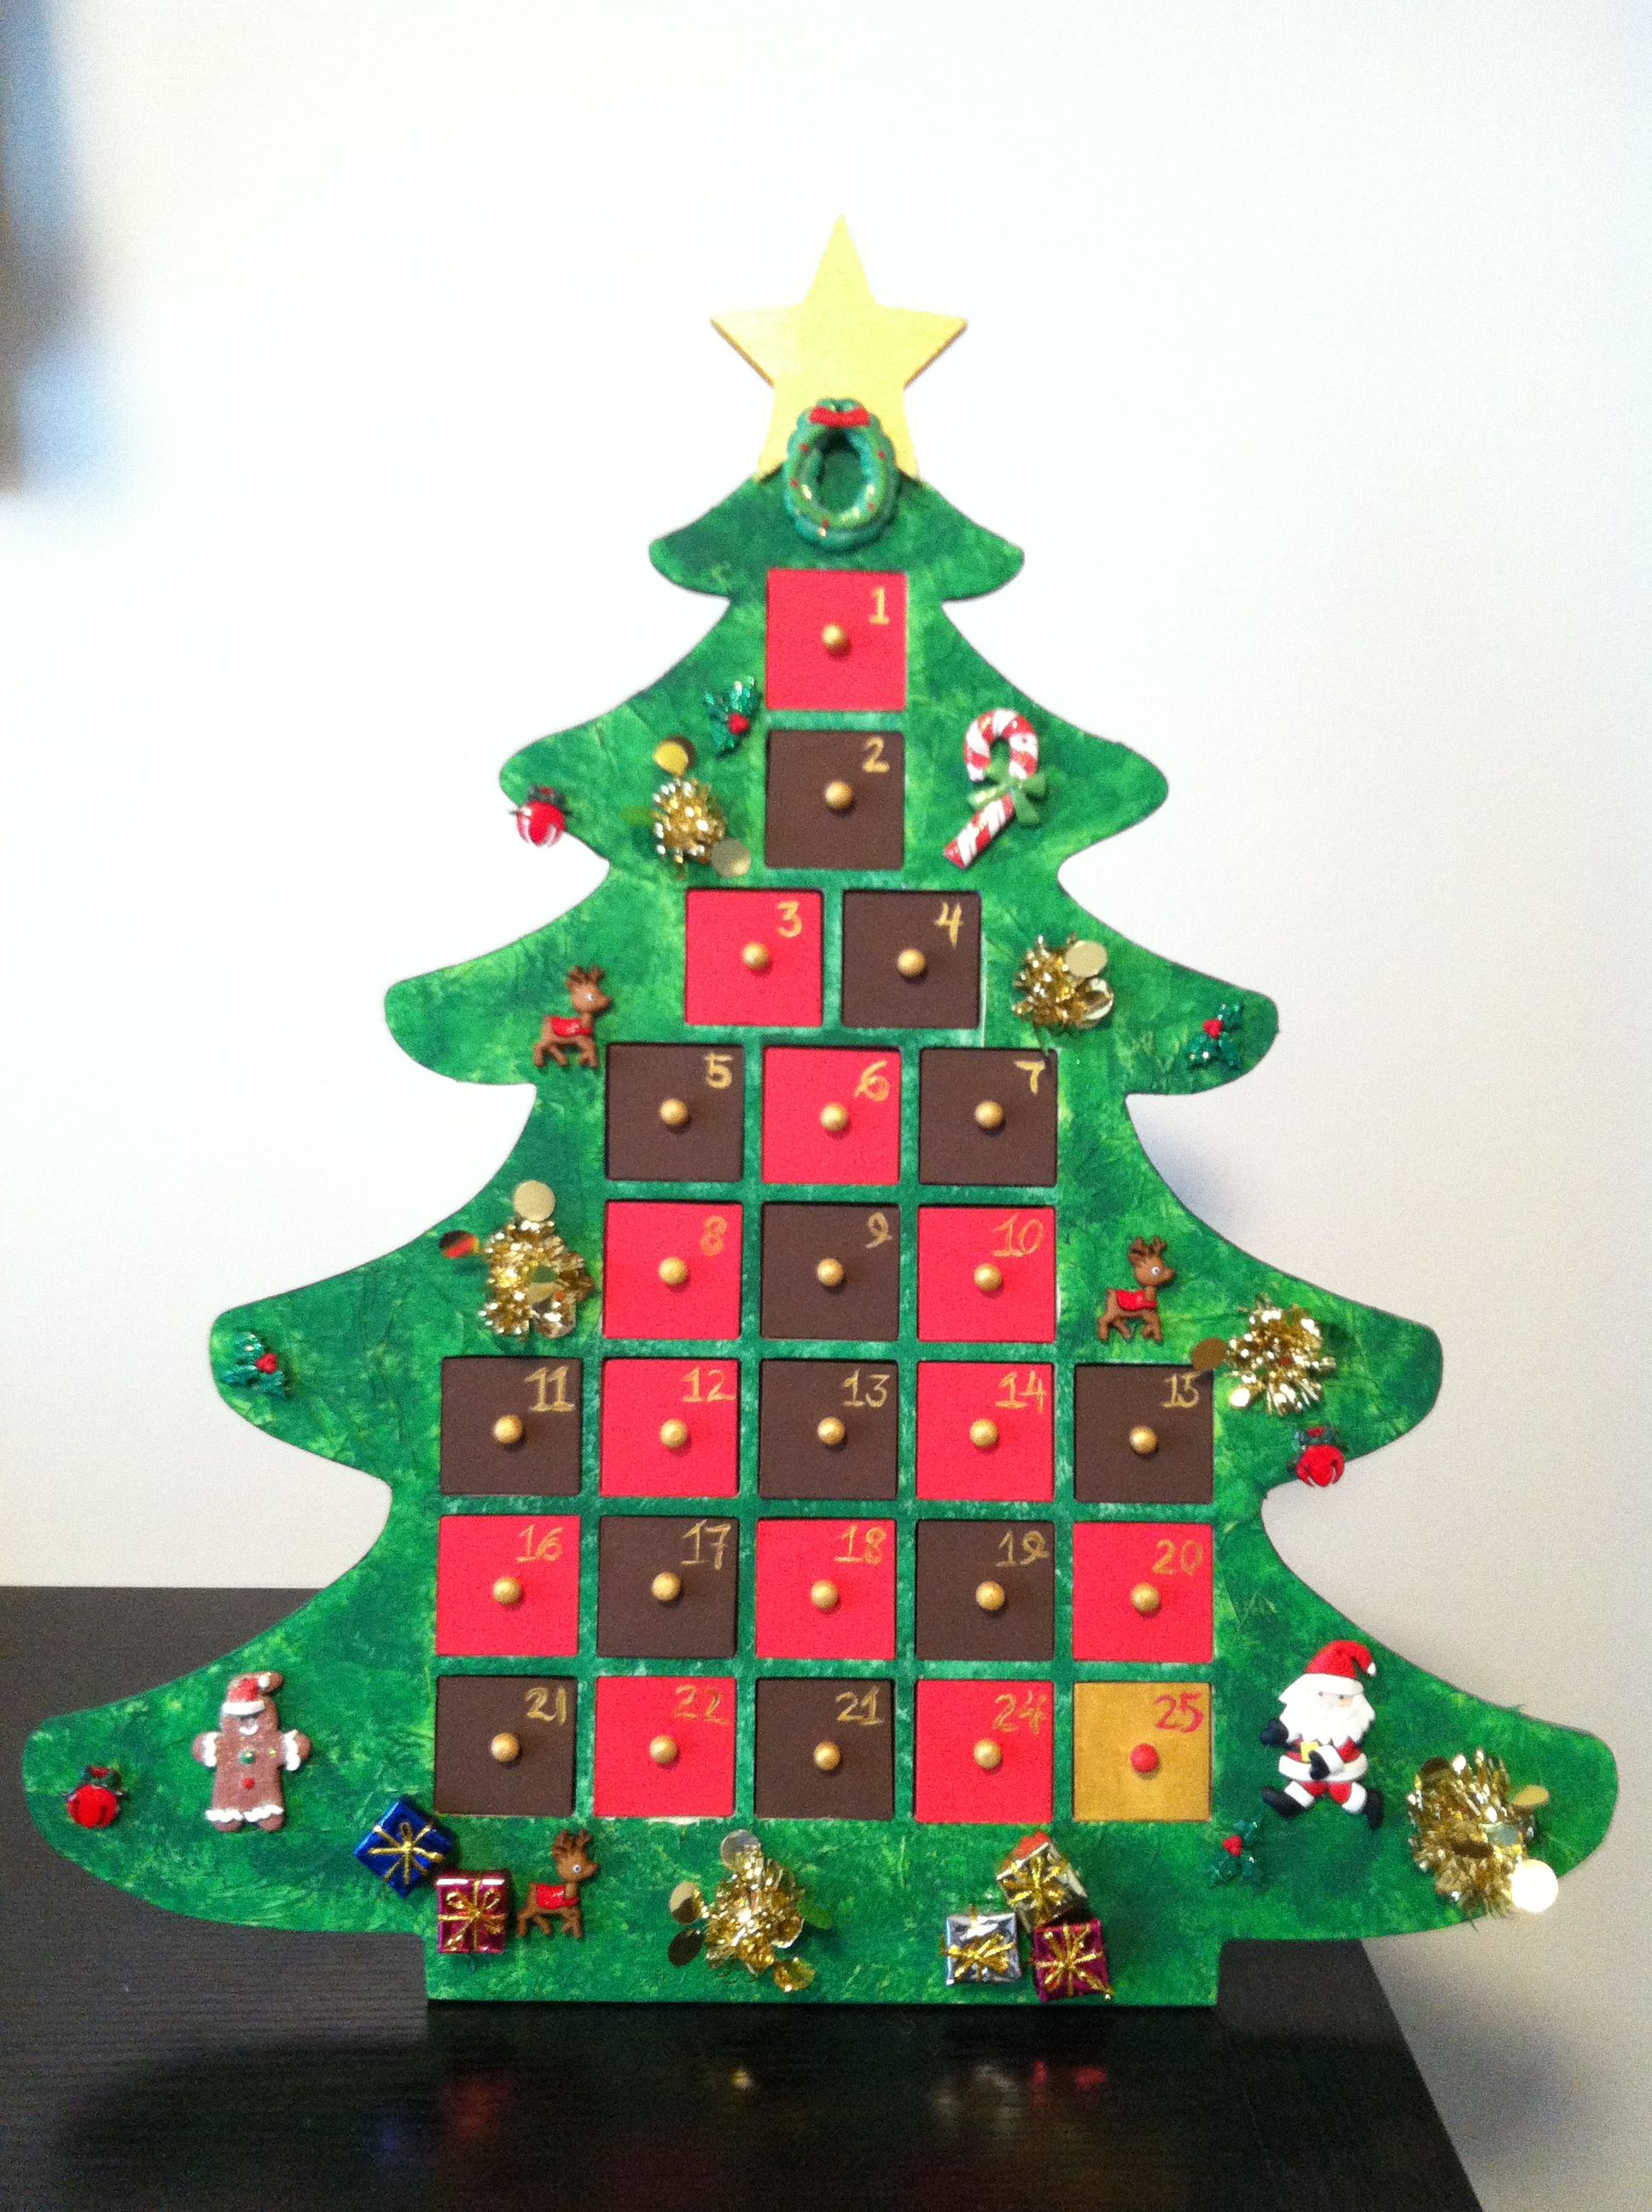 Do it yourself advent calendar unfinished wooden tree from do it yourself advent calendar unfinished wooden tree from michaels craft store decorate solutioingenieria Images